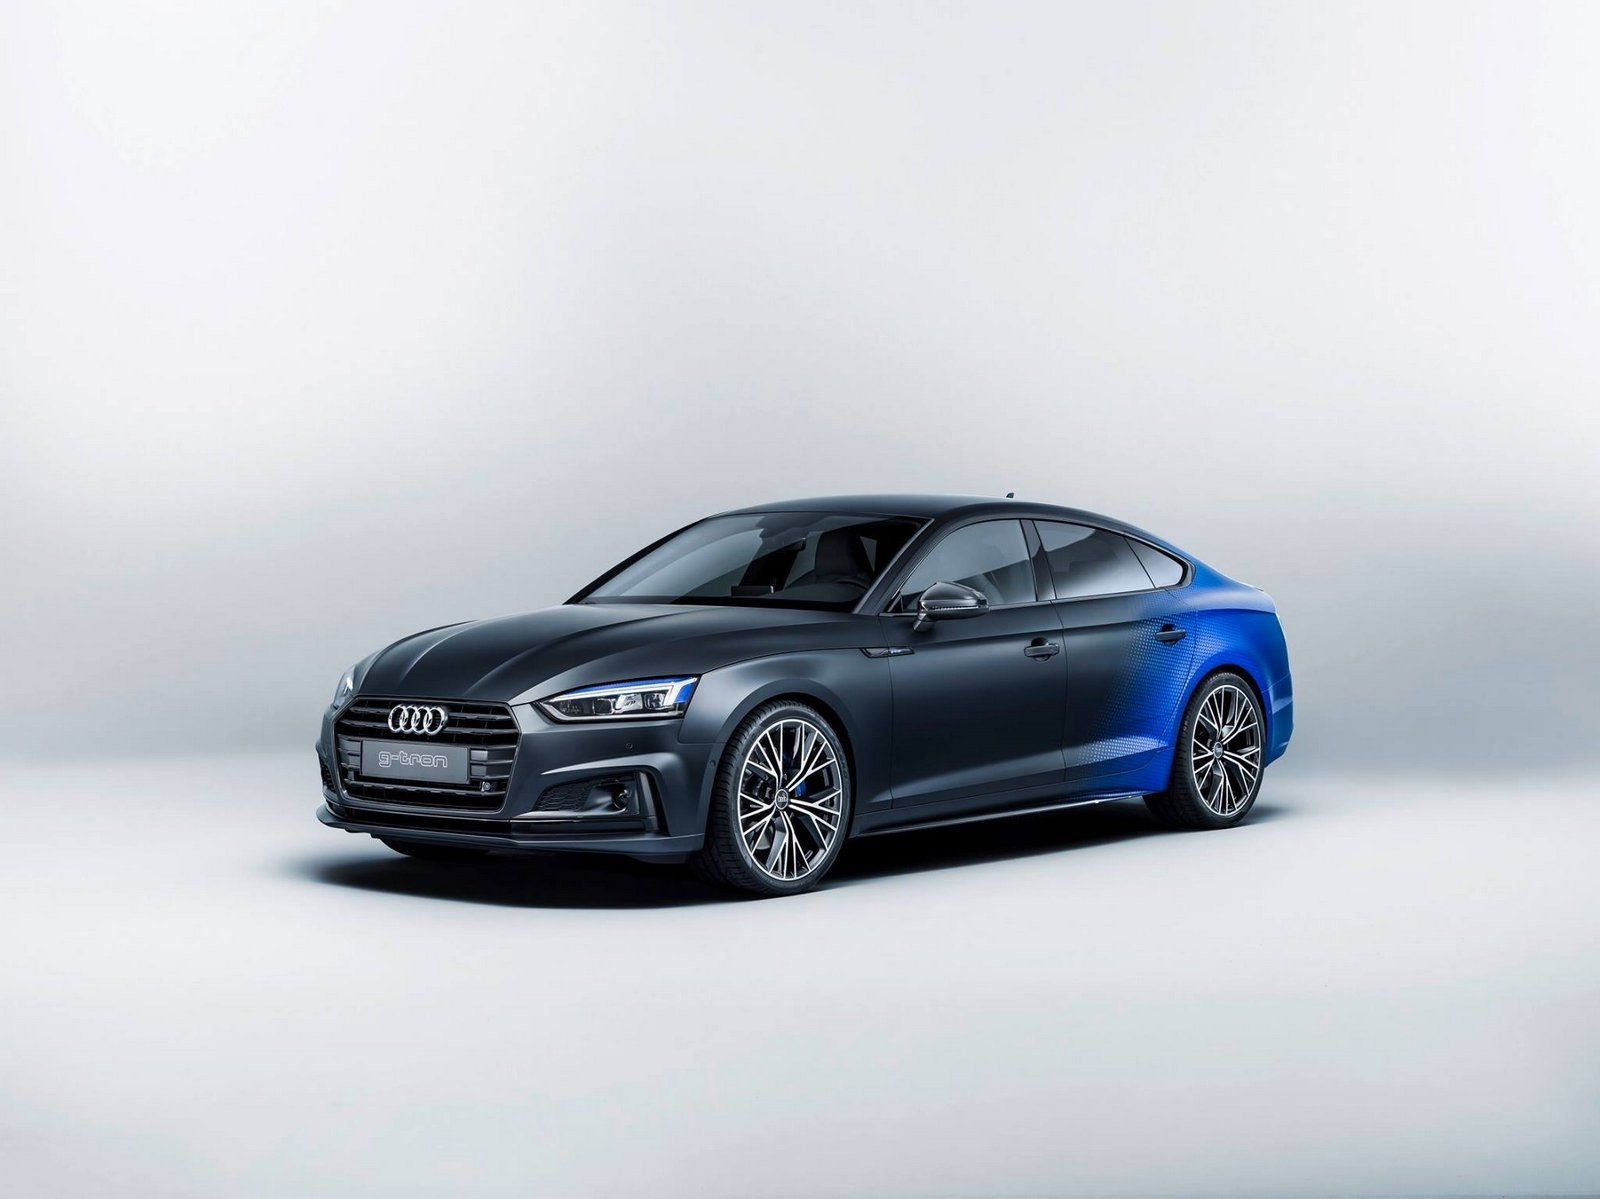 Audi A5 Sportback G Tron Brings Cng Power To Worthersee Audi A5 Sportback Audi Red Audi